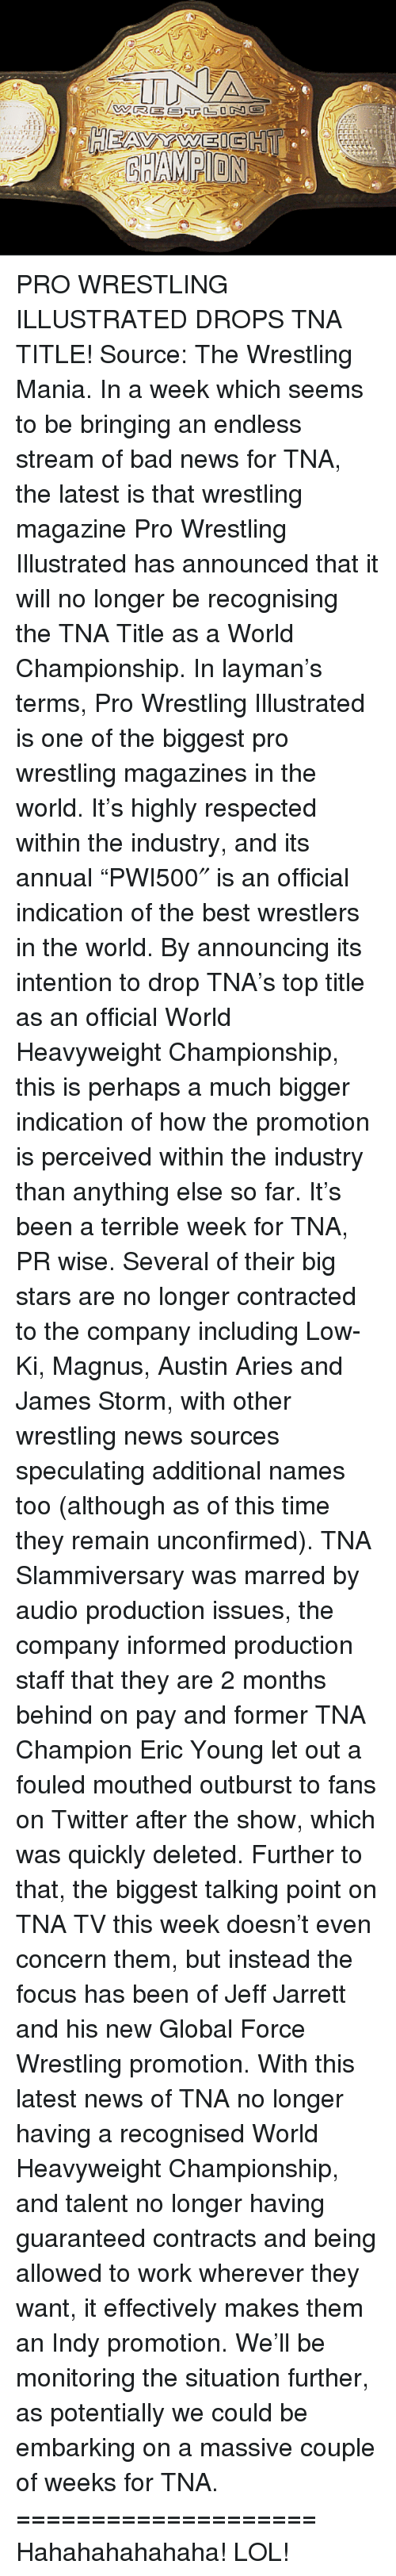 "Bad, Lol, and News: re 92尽E 357 ﹄0DA0G3  7Ct  で炒「  r:rr  D  G  TrΓ厂 PRO WRESTLING ILLUSTRATED DROPS TNA TITLE!  Source: The Wrestling Mania.  In a week which seems to be bringing an endless stream of bad news for TNA, the latest is that wrestling magazine Pro Wrestling Illustrated has announced that it will no longer be recognising the TNA Title as a World Championship.  In layman's terms, Pro Wrestling Illustrated is one of the biggest pro wrestling magazines in the world. It's highly respected within the industry, and its annual ""PWI500″ is an official indication of the best wrestlers in the world. By announcing its intention to drop TNA's top title as an official World Heavyweight Championship, this is perhaps a much bigger indication of how the promotion is perceived within the industry than anything else so far.  It's been a terrible week for TNA, PR wise. Several of their big stars are no longer contracted to the company including Low-Ki, Magnus, Austin Aries and James Storm, with other wrestling news sources speculating additional names too (although as of this time they remain unconfirmed). TNA Slammiversary was marred by audio production issues, the company informed production staff that they are 2 months behind on pay and former TNA Champion Eric Young let out a fouled mouthed outburst to fans on Twitter after the show, which was quickly deleted.  Further to that, the biggest talking point on TNA TV this week doesn't even concern them, but instead the focus has been of Jeff Jarrett and his new Global Force Wrestling promotion.  With this latest news of TNA no longer having a recognised World Heavyweight Championship, and talent no longer having guaranteed contracts and being allowed to work wherever they want, it effectively makes them an Indy promotion.  We'll be monitoring the situation further, as potentially we could be embarking on a massive couple of weeks for TNA.  ====================  Hahahahahahaha! LOL!"